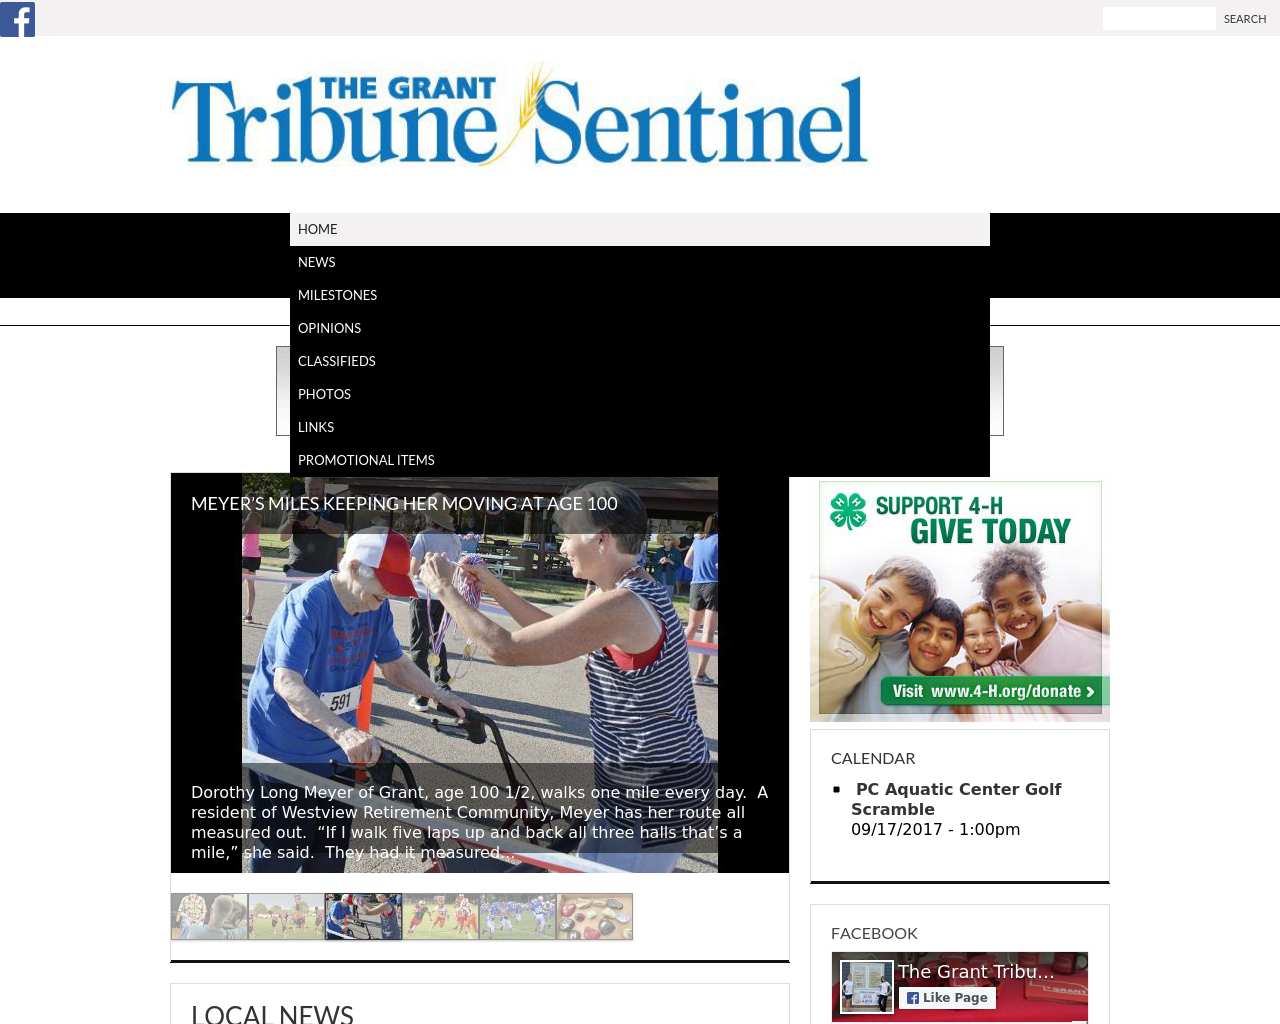 The-Grant-Tribune-Sentinel-Advertising-Reviews-Pricing